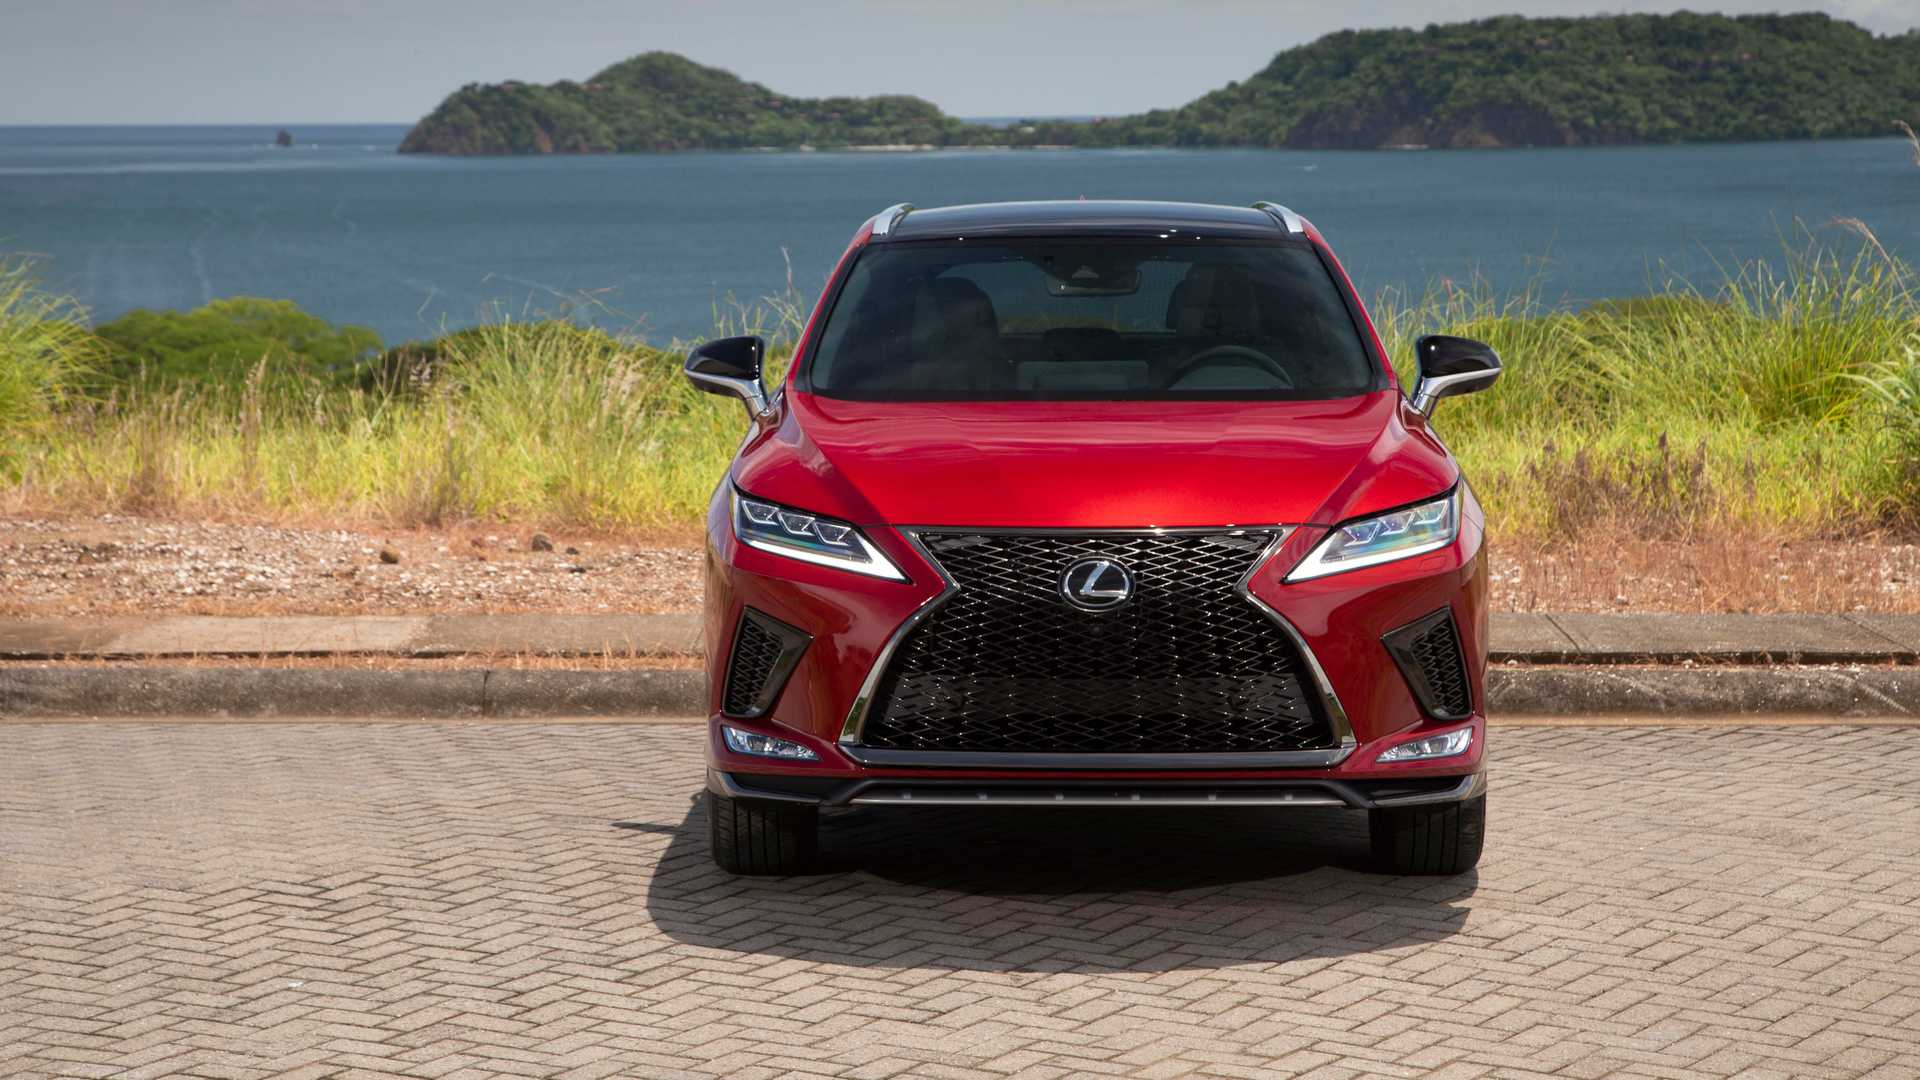 41 The Best 2020 Lexus Tx 350 Configurations